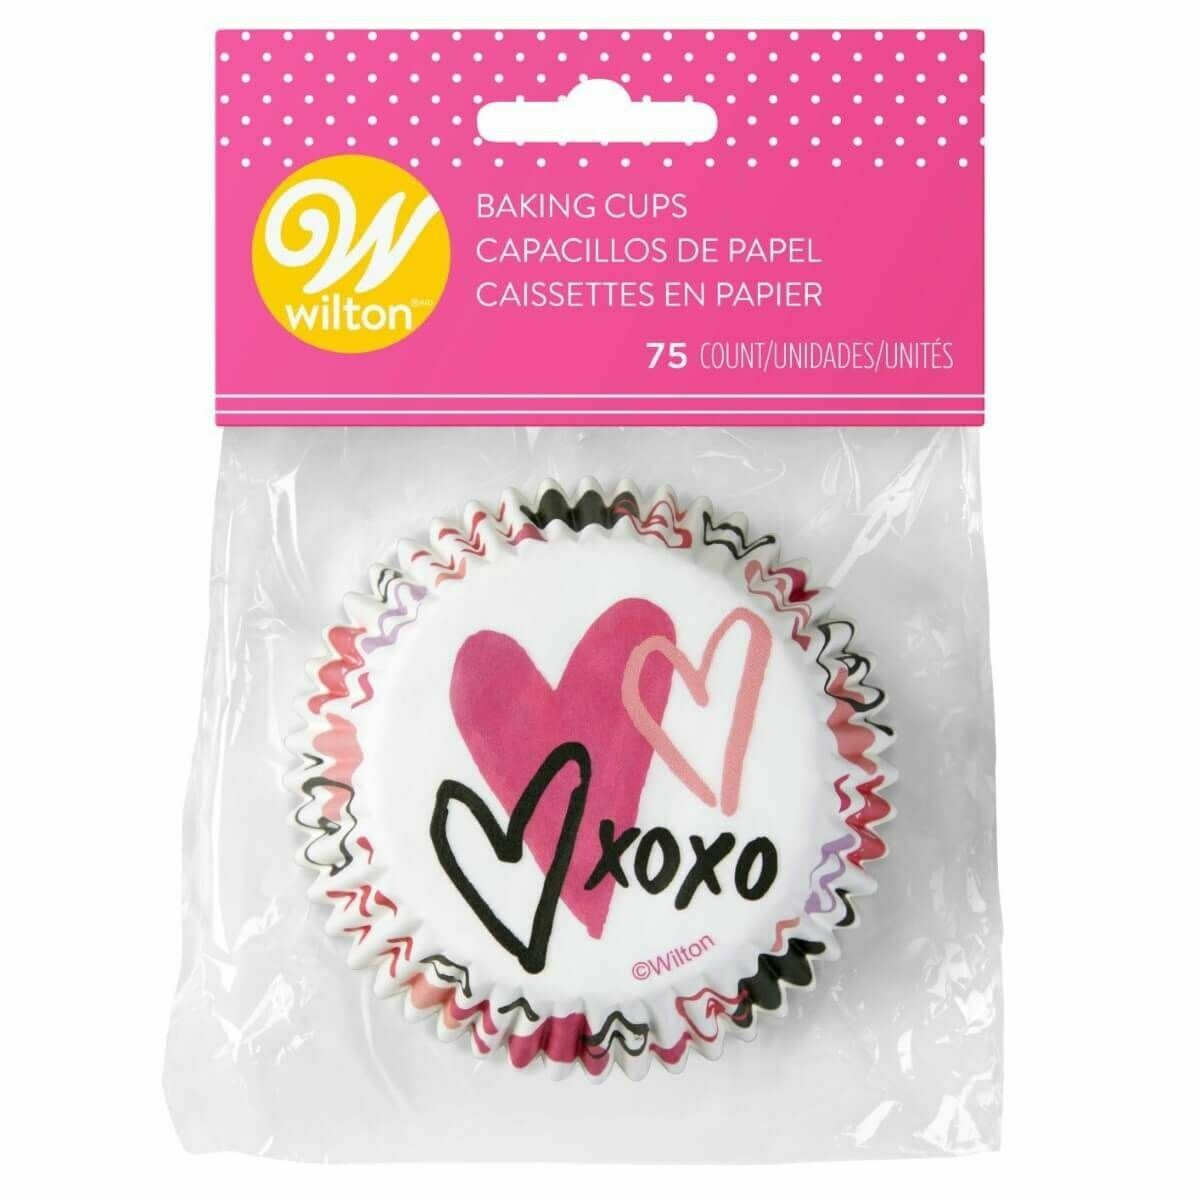 SALE!!! Wilton Valentine Cupcake Cases -TRADITIONAL -Θήκες ψησίματος Καπκέικ/Μάφιν 75 τεμ